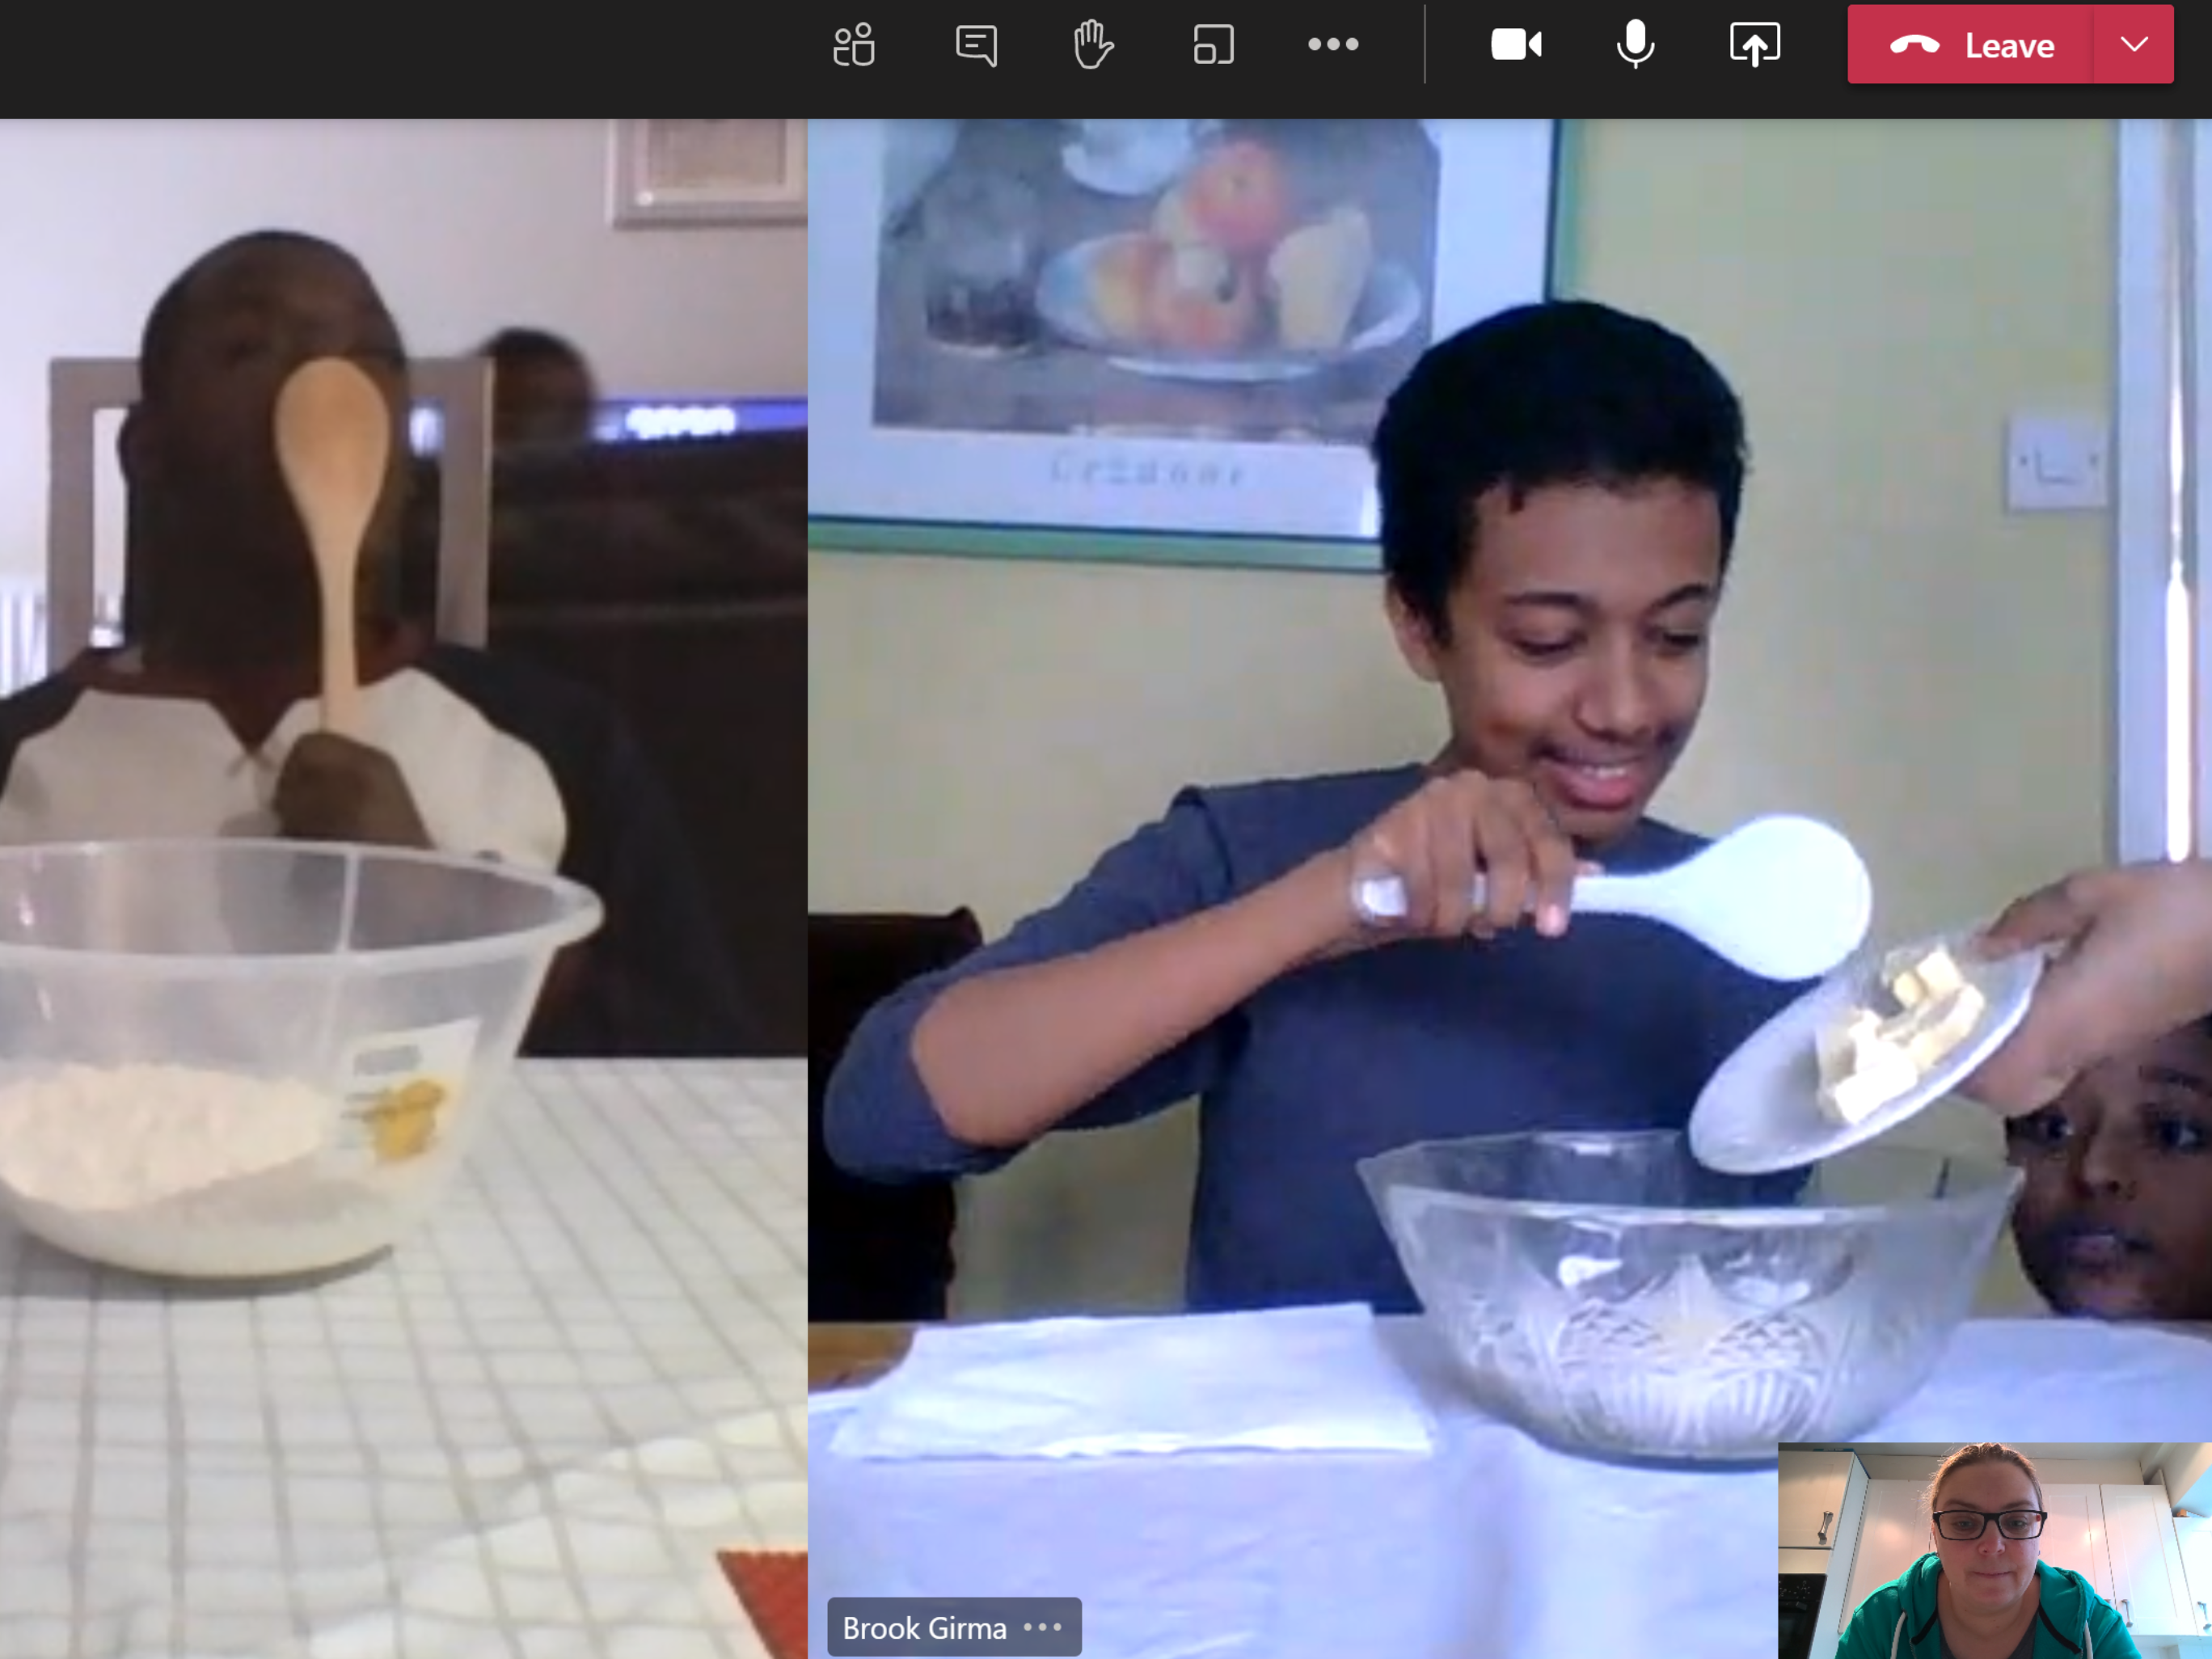 Two boys cooking online with an image of their teacher at the corner of the screen